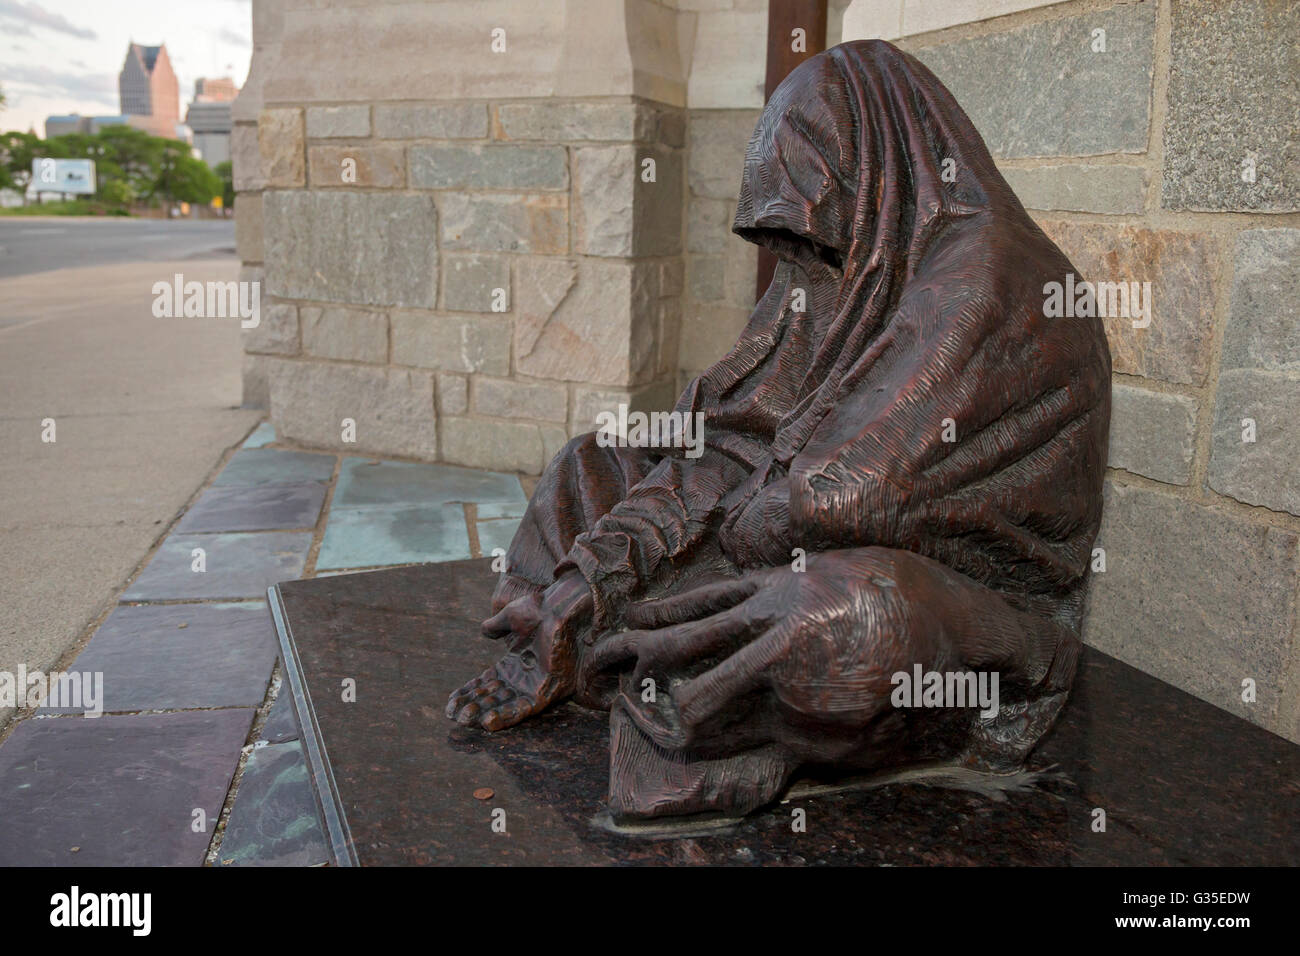 Detroit, Michigan - A sculpture called 'Whatsoever You Do' by Canadian artist Timothy Schmalz shows Jesus - Stock Image